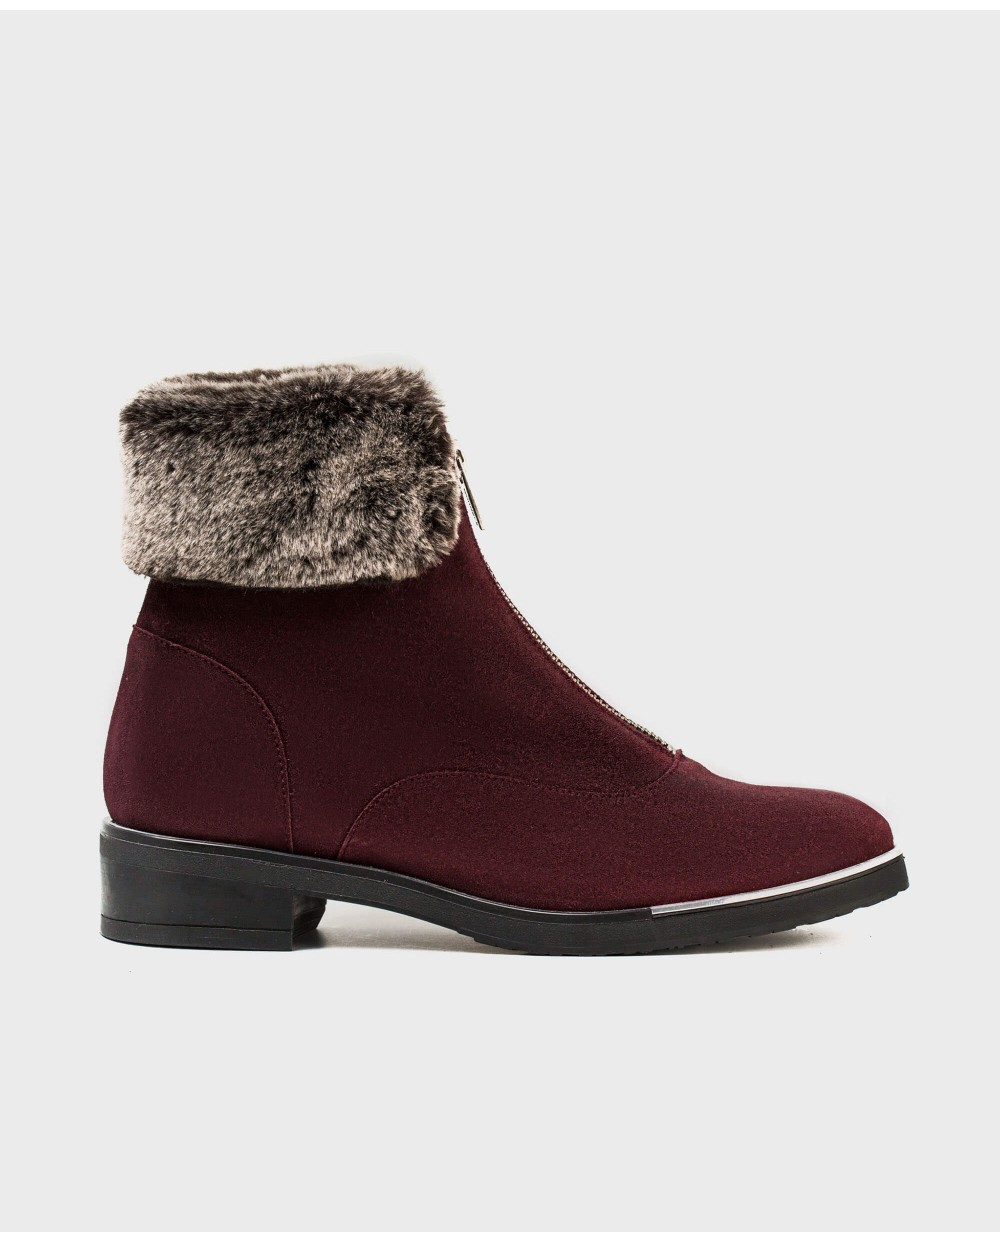 Wonders-Outlet-Fur suede leather ankle boot